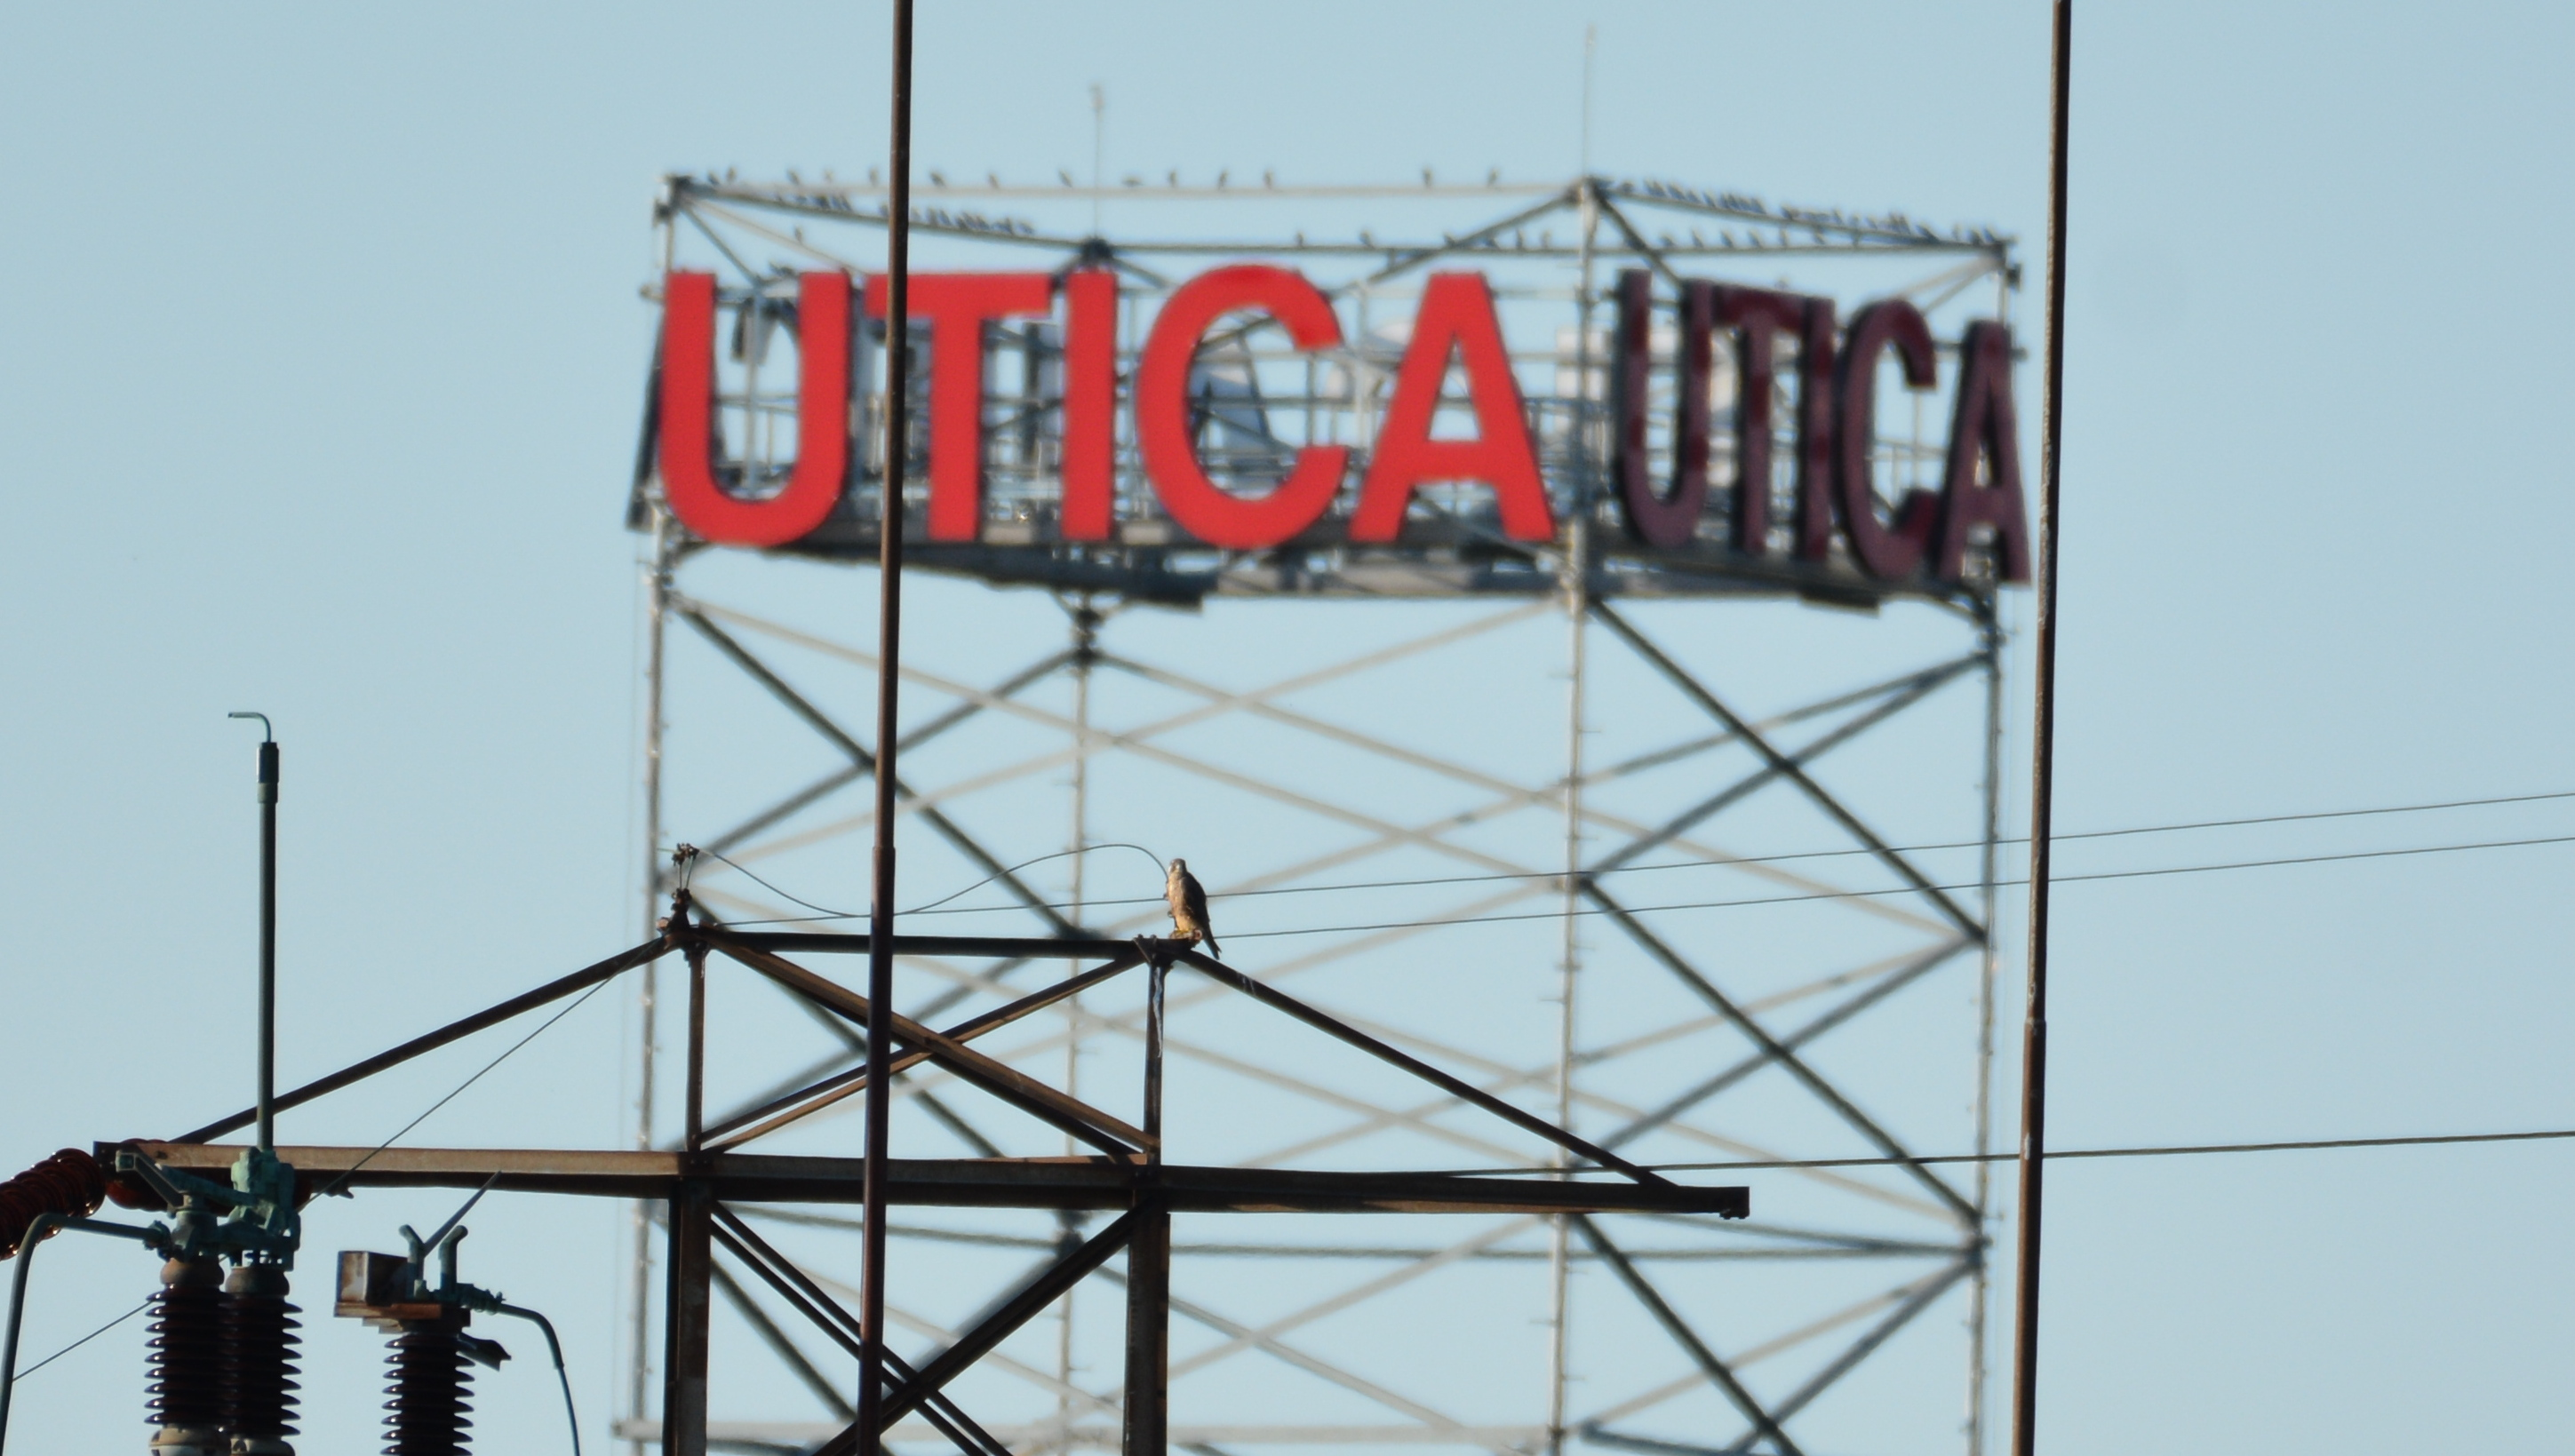 Perching on a tower with the Utica sign in the backround